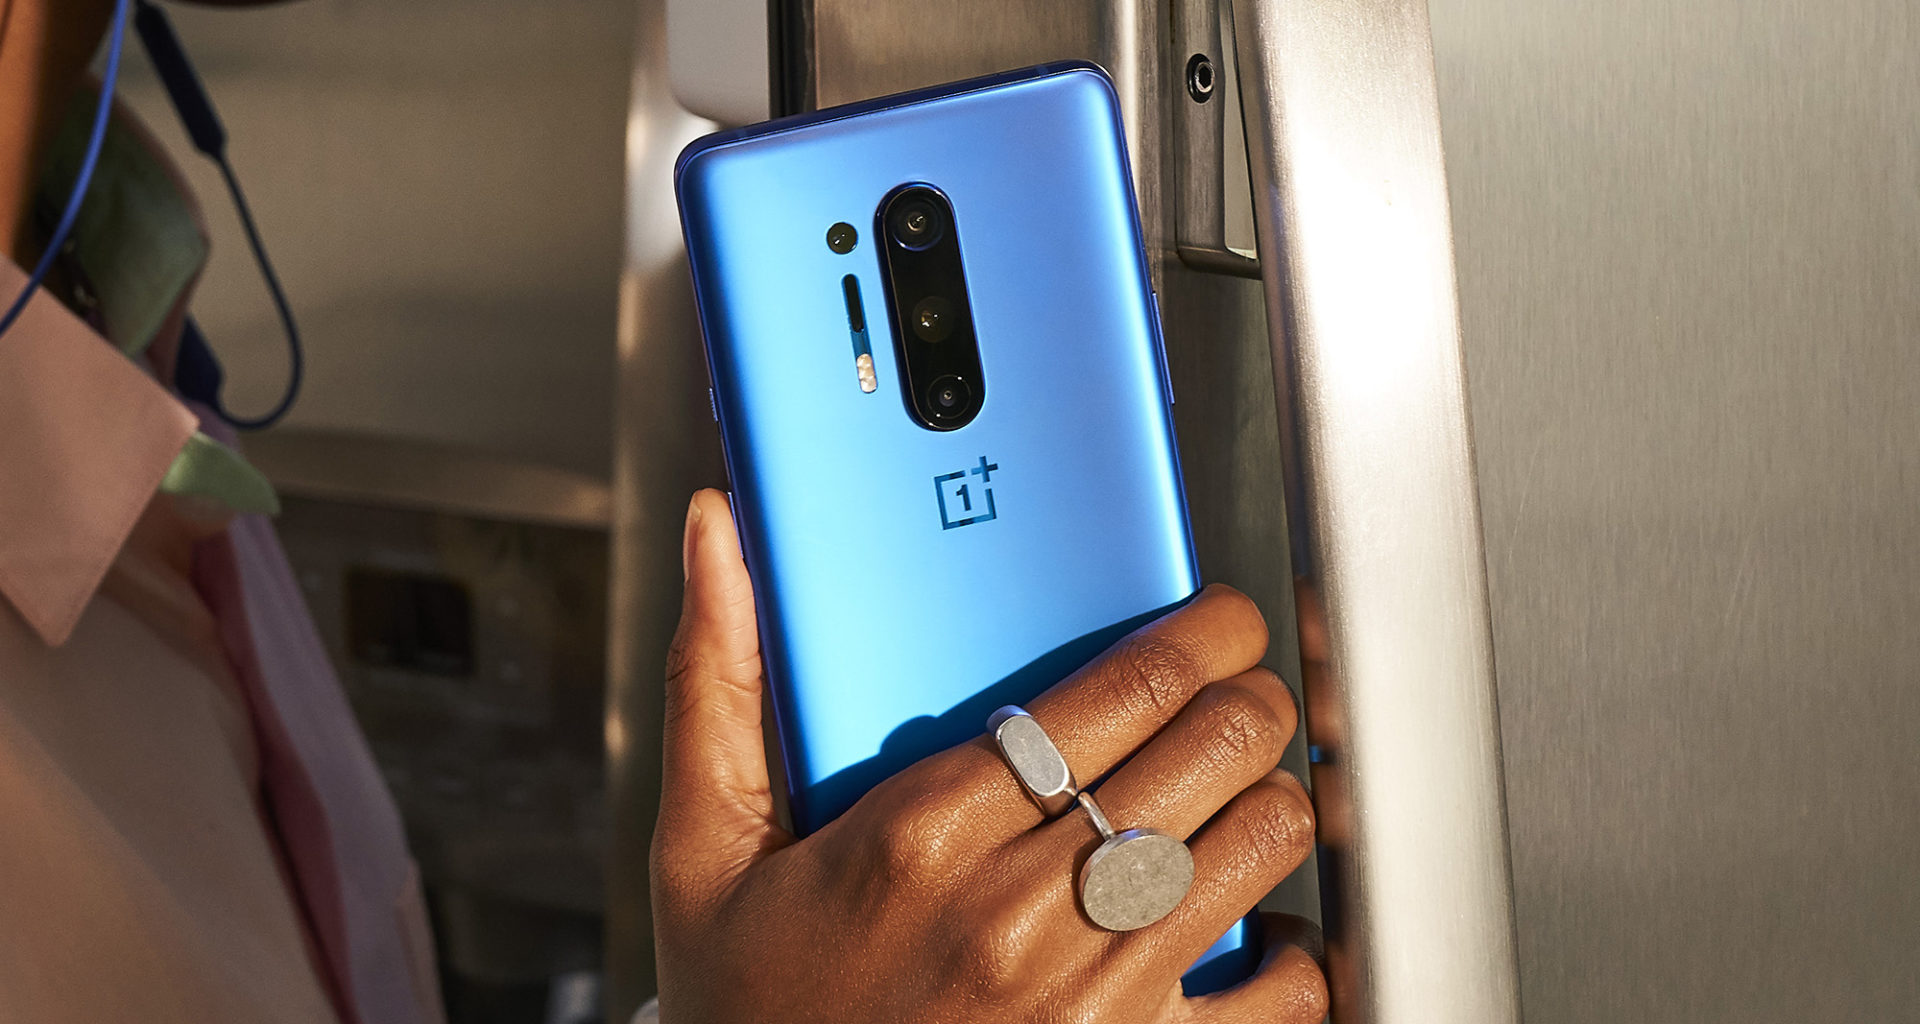 OnePlus 8T to arrive with 120Hz AMOLED display and 48MP quad camera